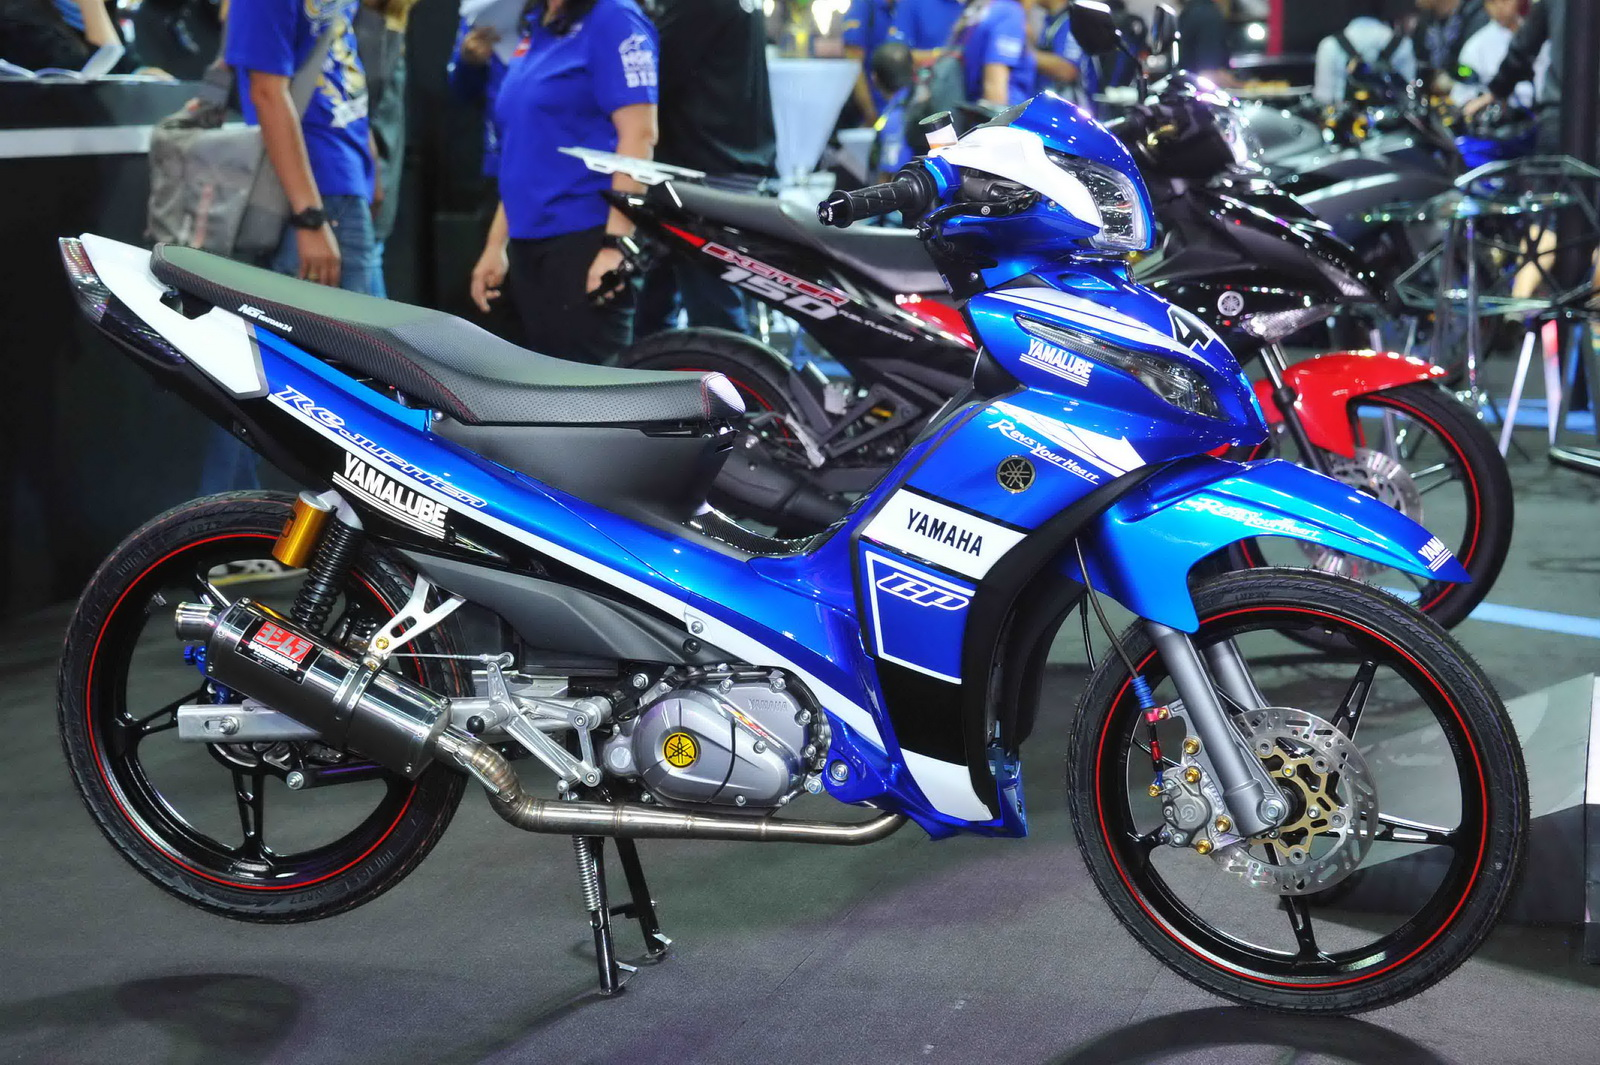 �yamaha rev salon� ����������������������������������������������